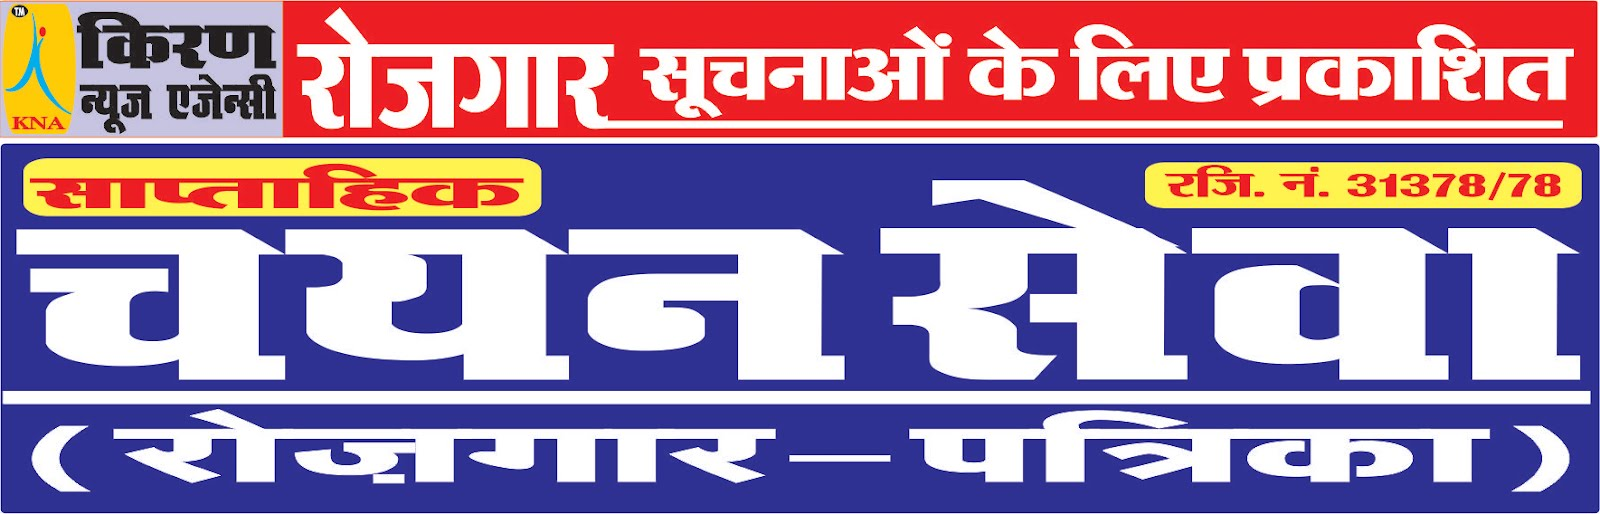 C S JOB  mp sarkari naukri Government Jobs India Rojgar Patrika Chayan Seva